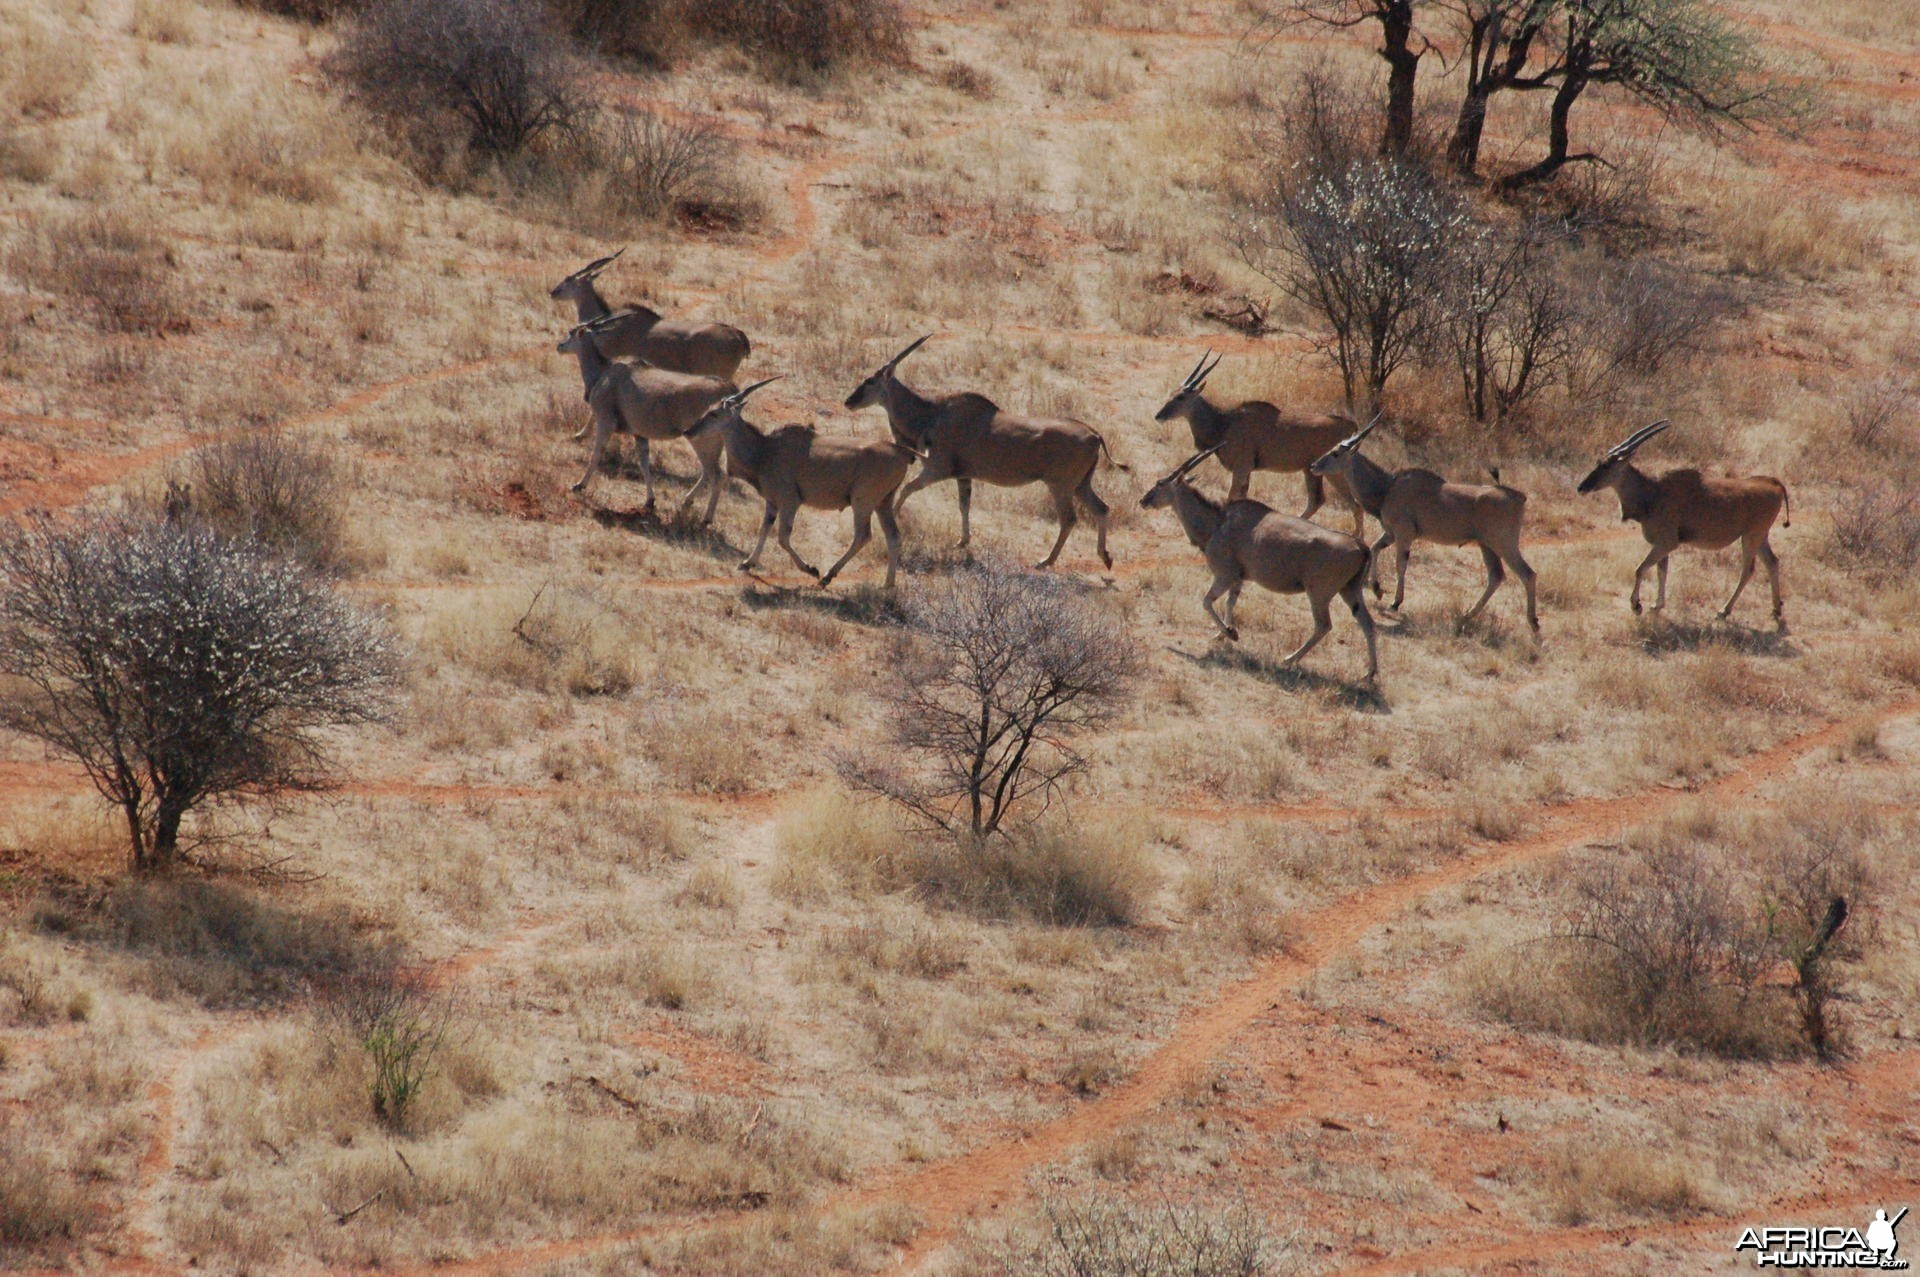 Cape Eland in Namibia